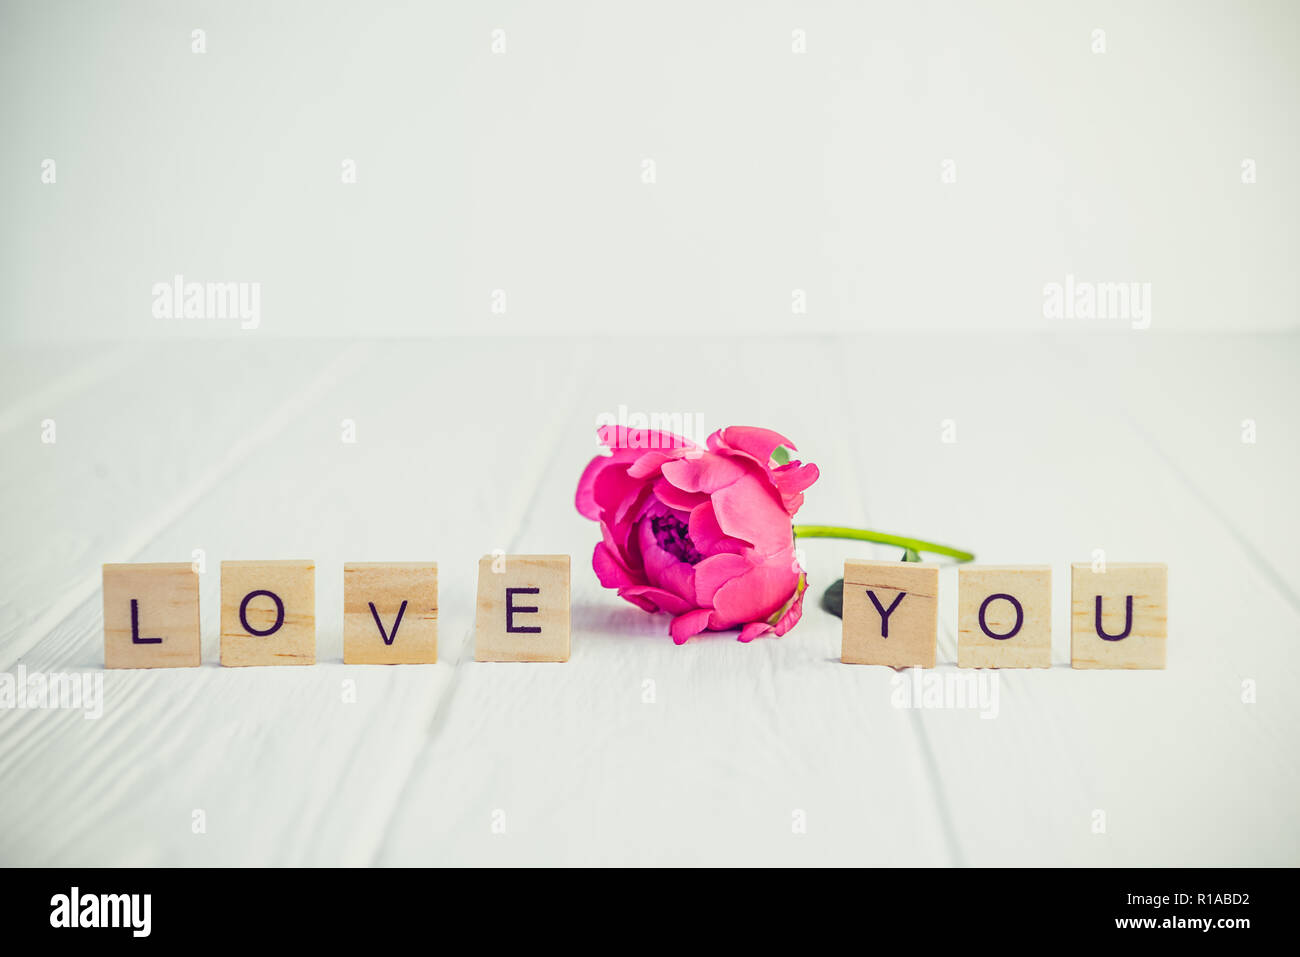 Message I love you spelled in wooden blocks with pink peony bud flower on white wooden table. Love, Valentines day background. Gift, greeting, complim Stock Photo